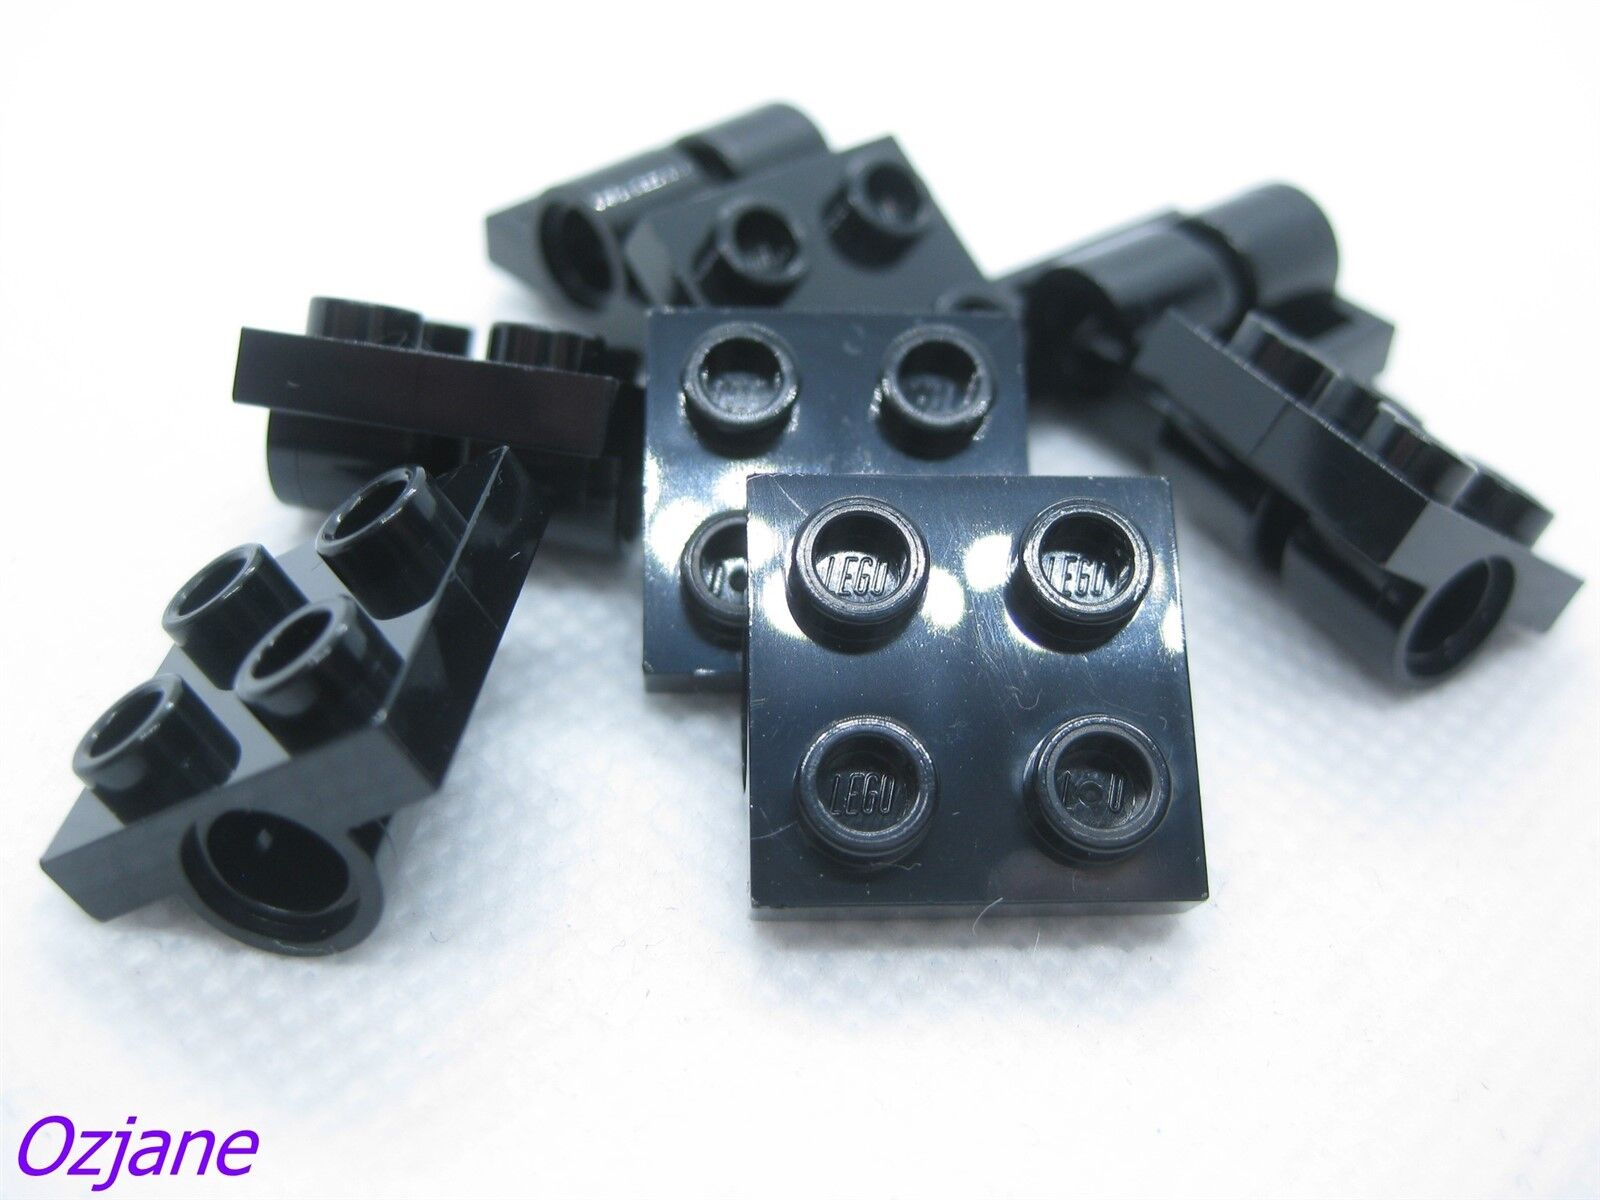 Modified 2 x 2 with Pin Holes LEGO 2817 Plate Black